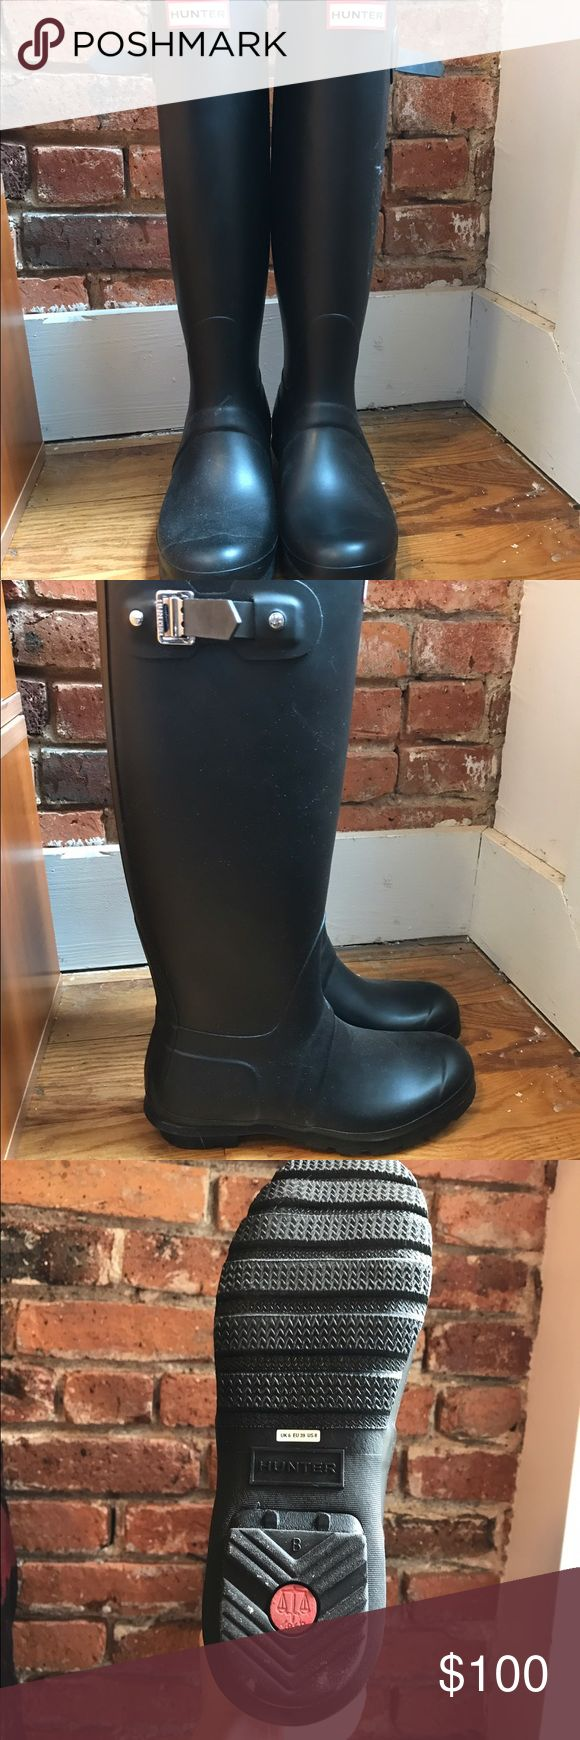 Hunter Original Tall Rain Boots - Like New Black, tall, Hunter Rain Boots. Like new. Received them as a gift and wore to the airport only! Hunter Boots Shoes Winter & Rain Boots